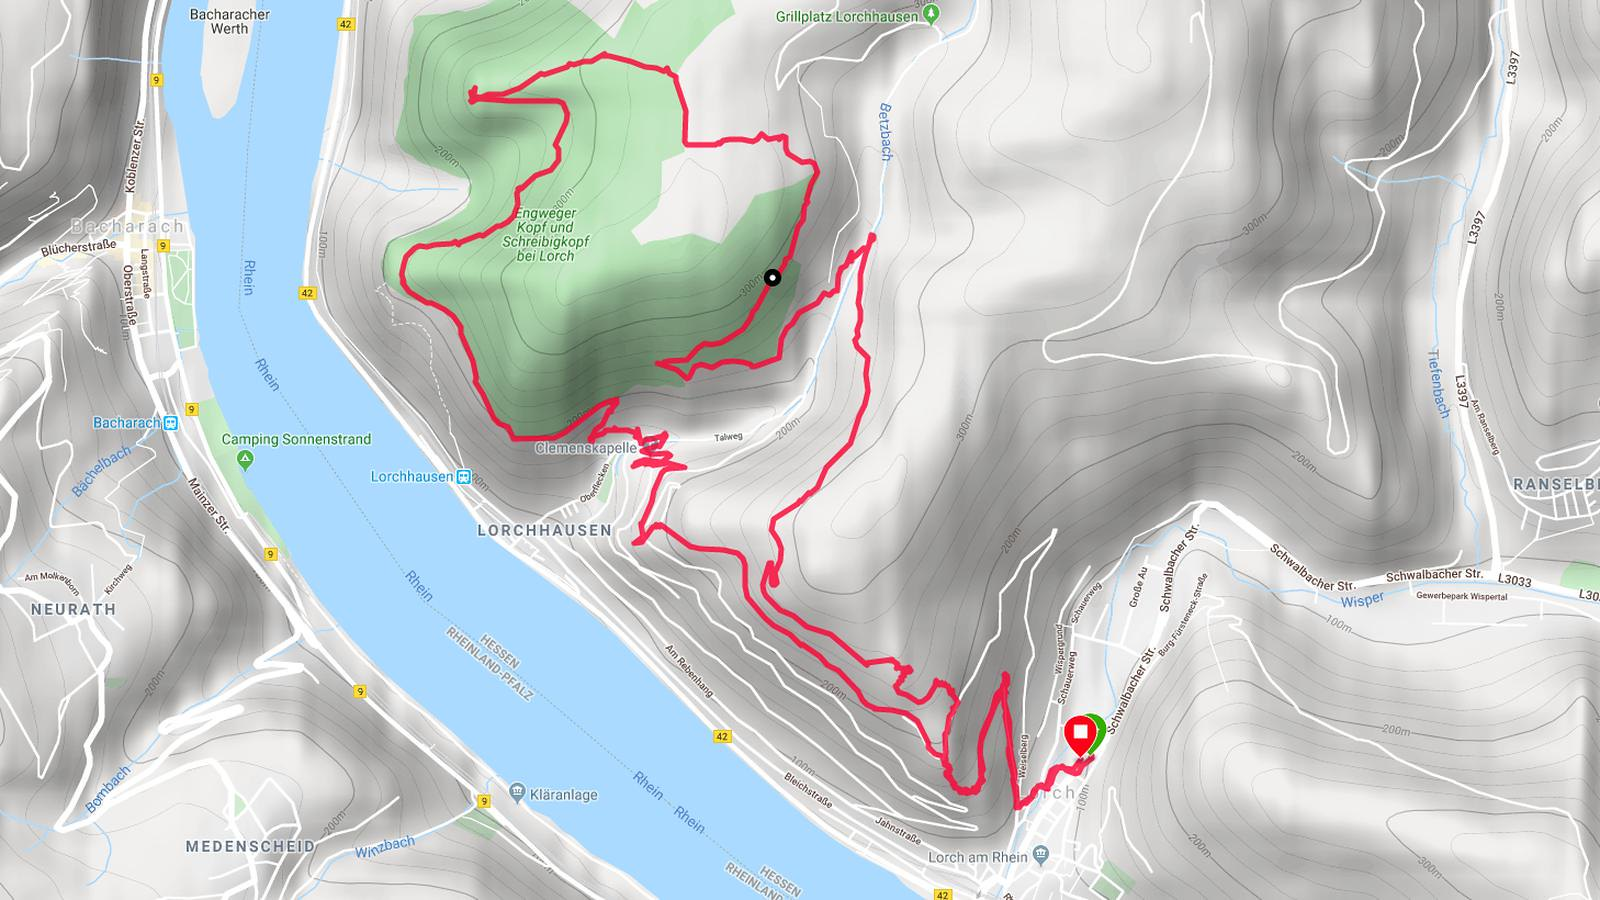 Rhein-Wisper-Glück, Wisper Trails (Screenshot Garmin Connect/Google)